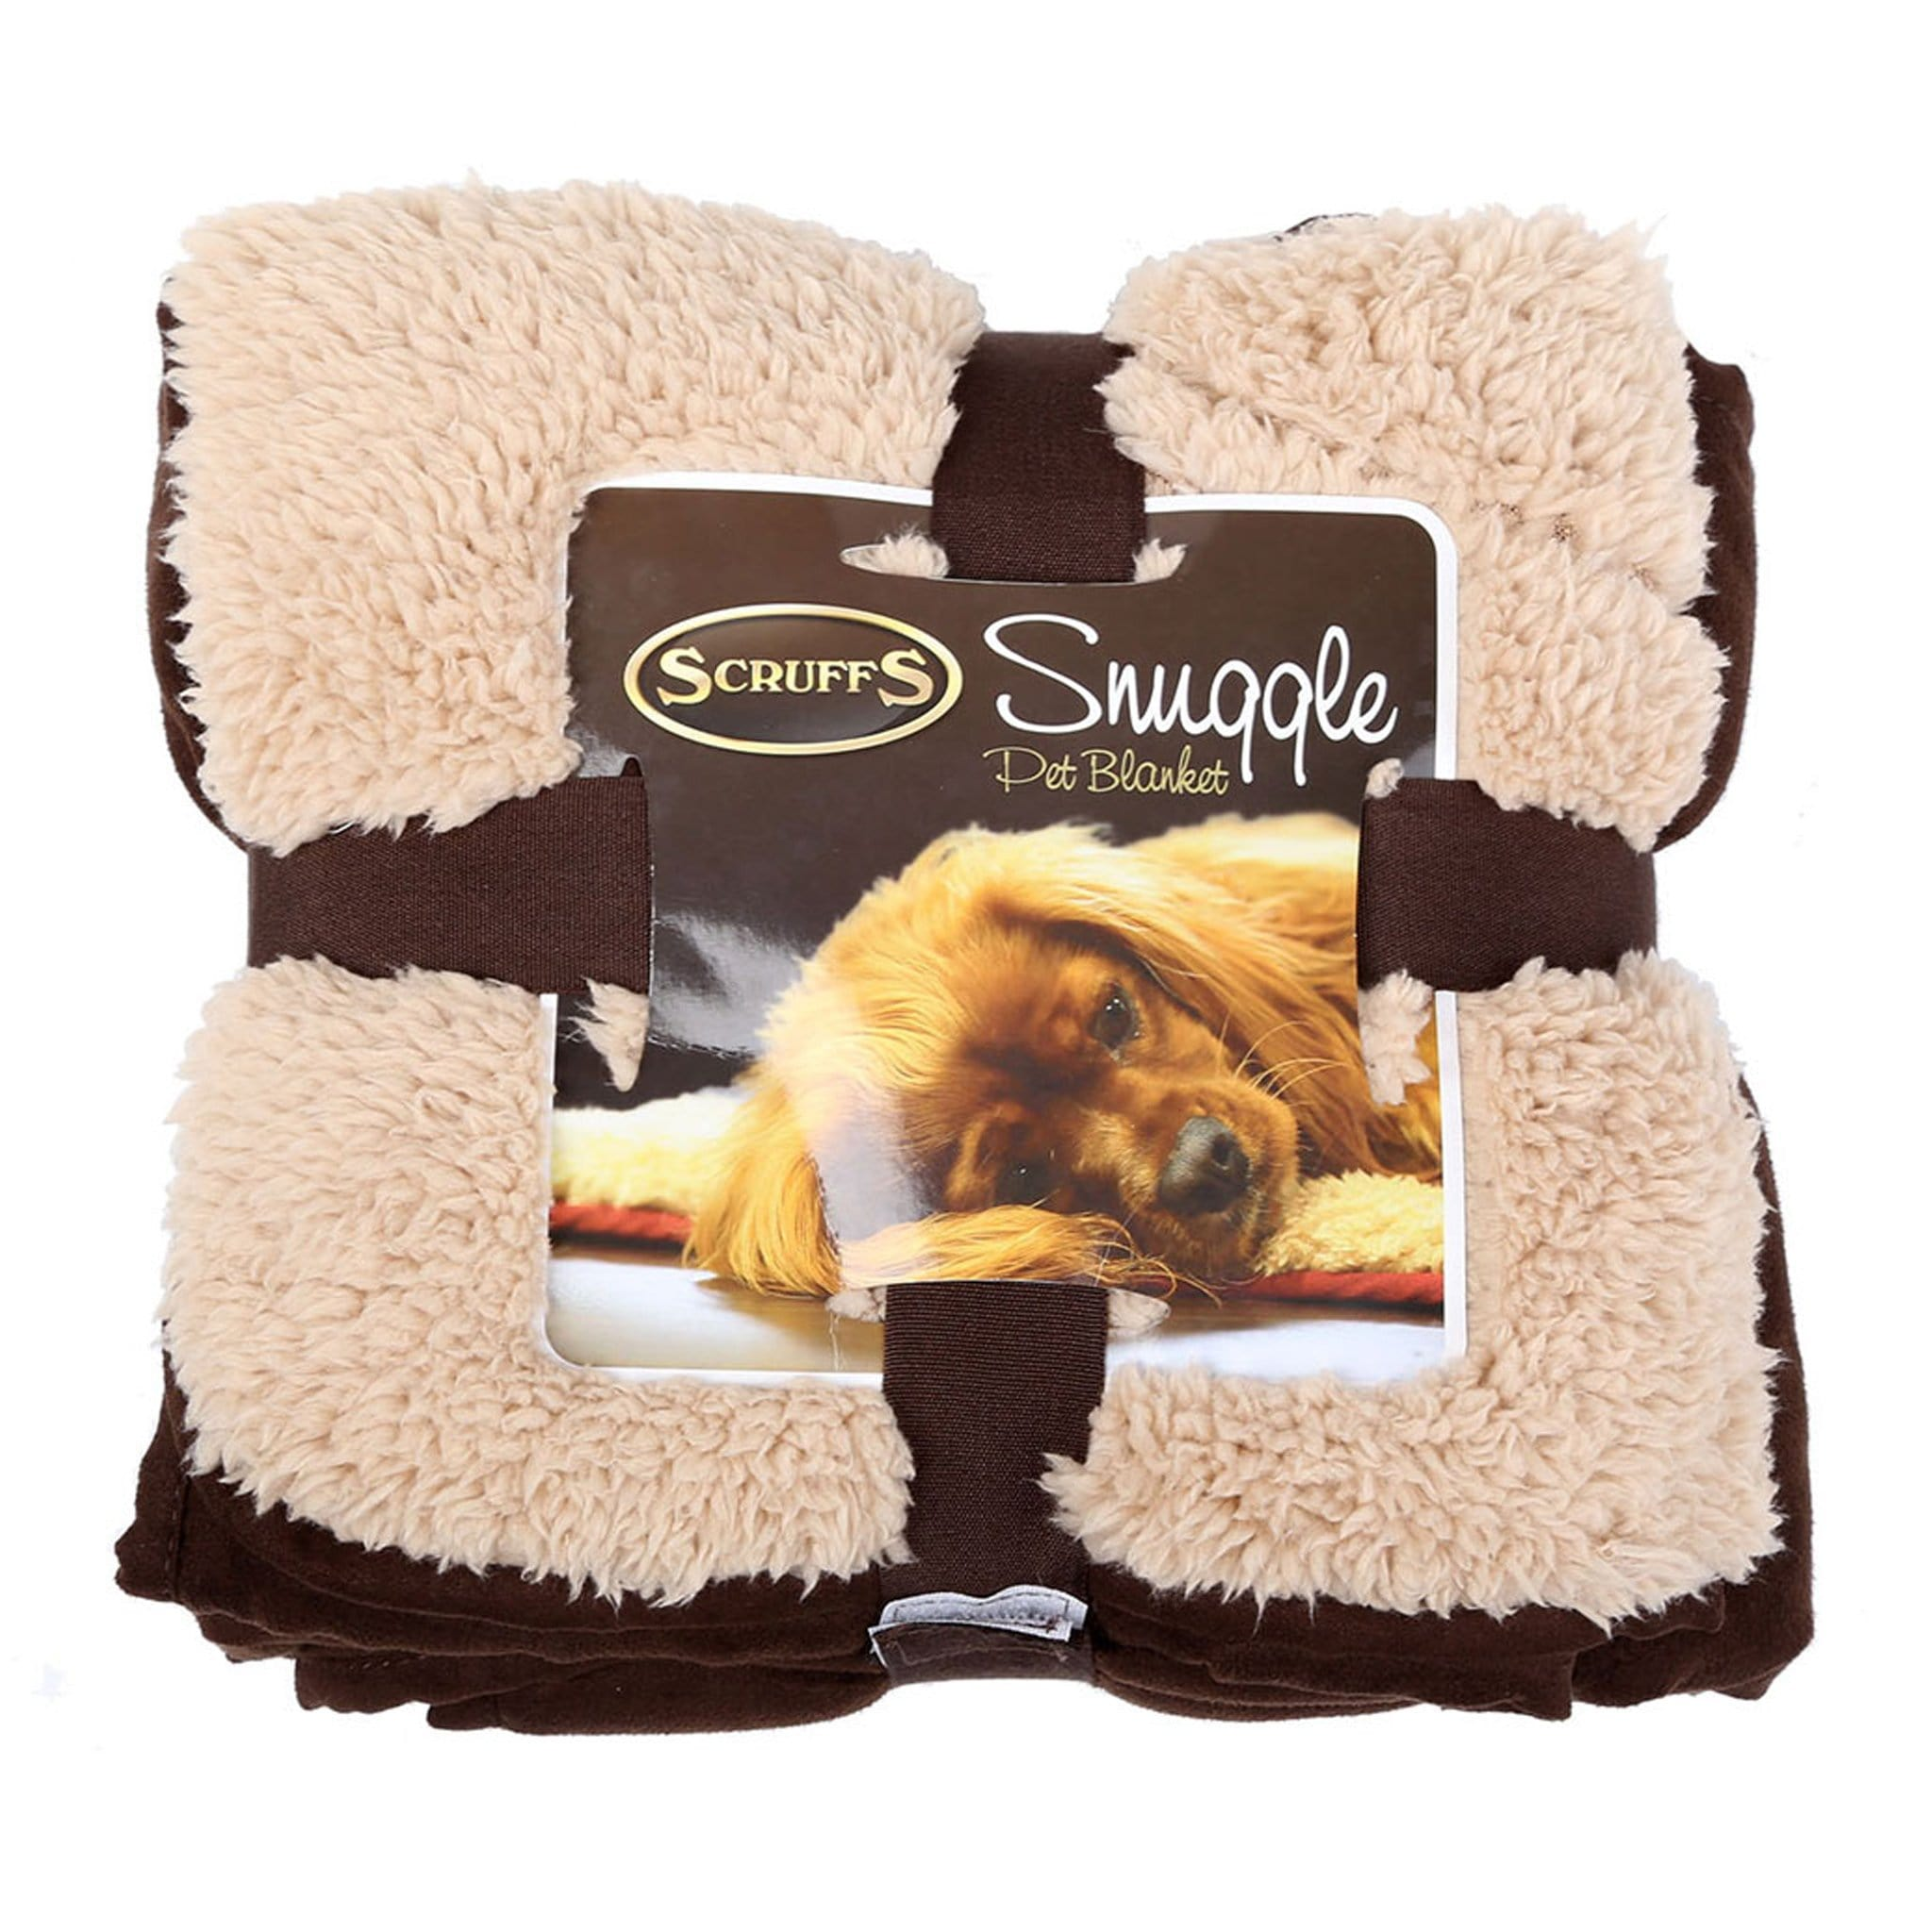 Scruffs Snuggle Dog Blanket 14442 Chocolate